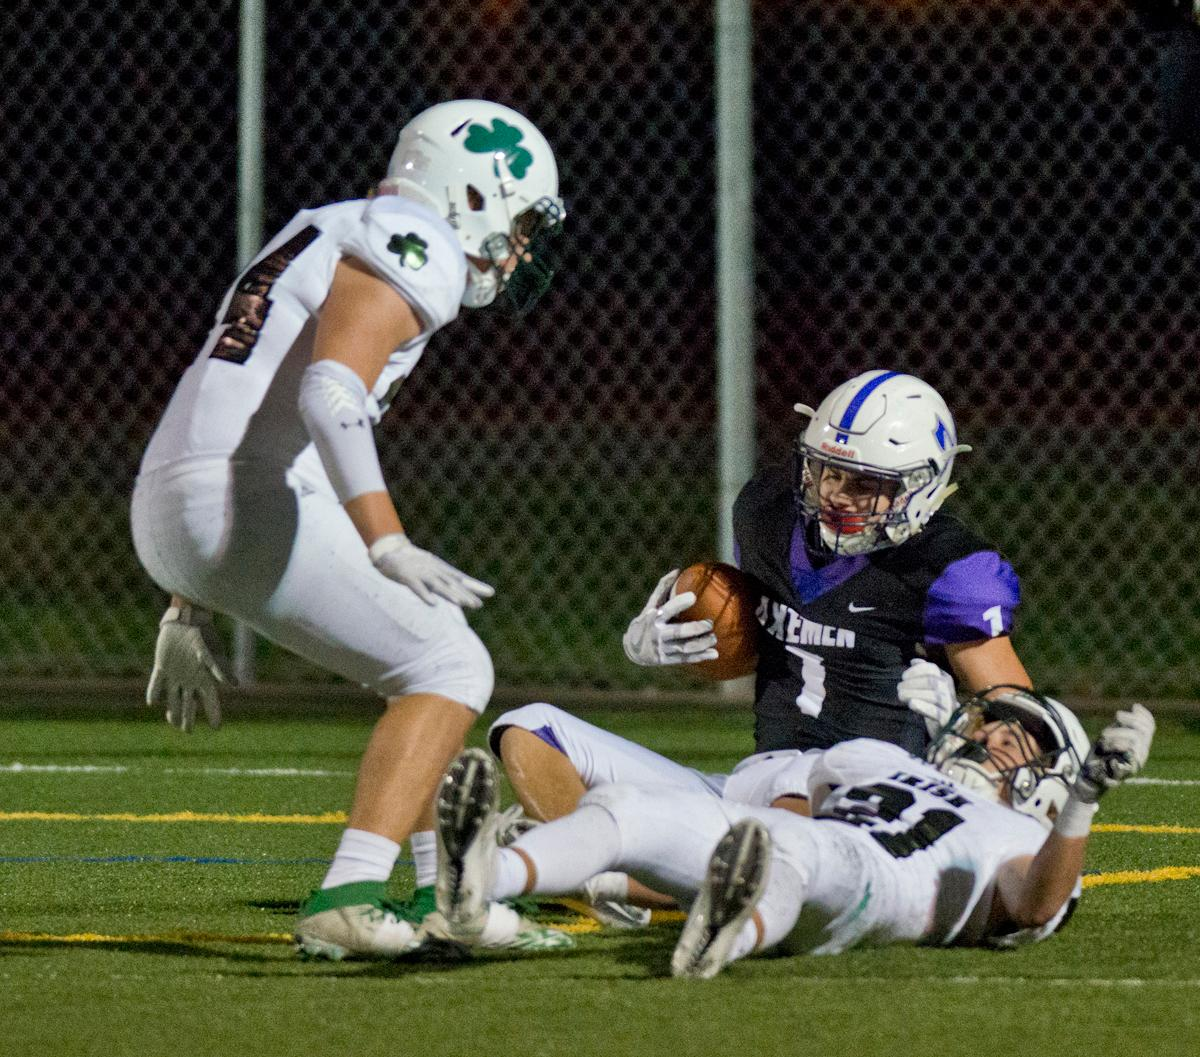 South Eugene Axemen wide receiver Elliot James (#1) falls to the ground after catching a long pass in the end zone for a score. Sheldon defeated South Eugene 63-6. Photo by Dan Morrison, Oregon News Lab